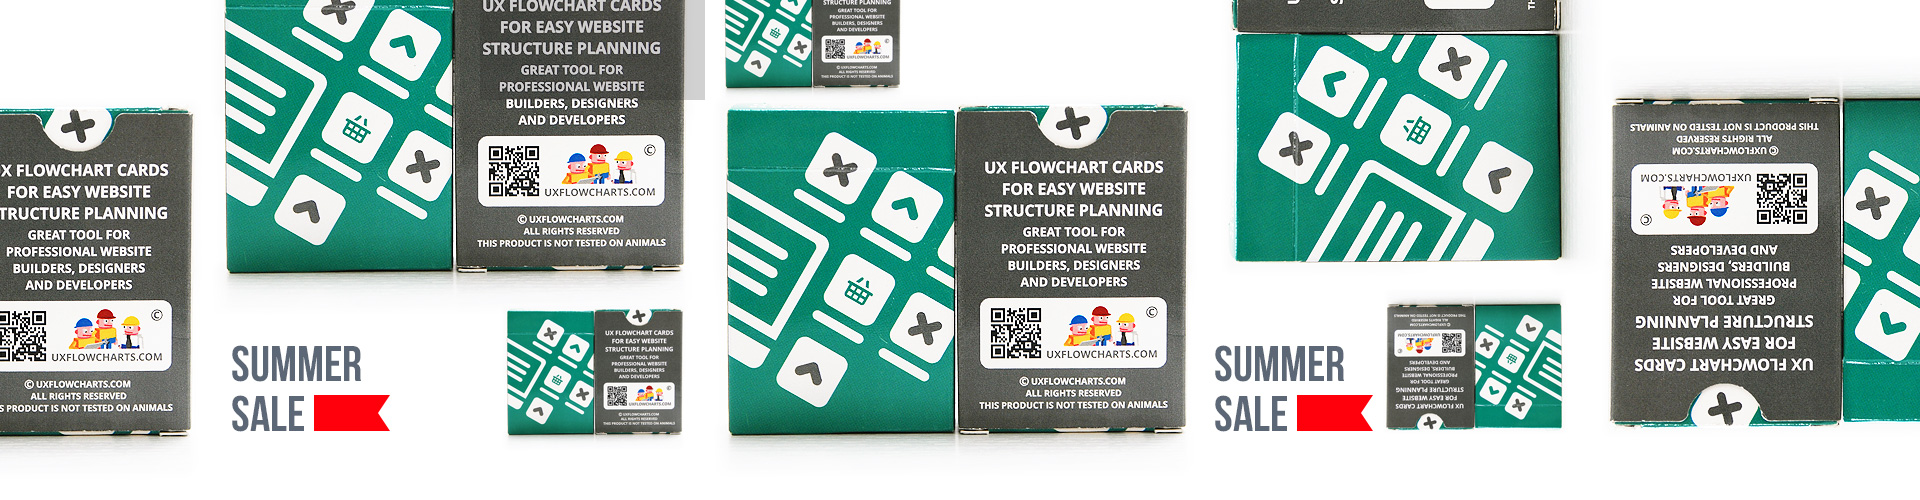 ux_flowchart_cards_summer_sale_1